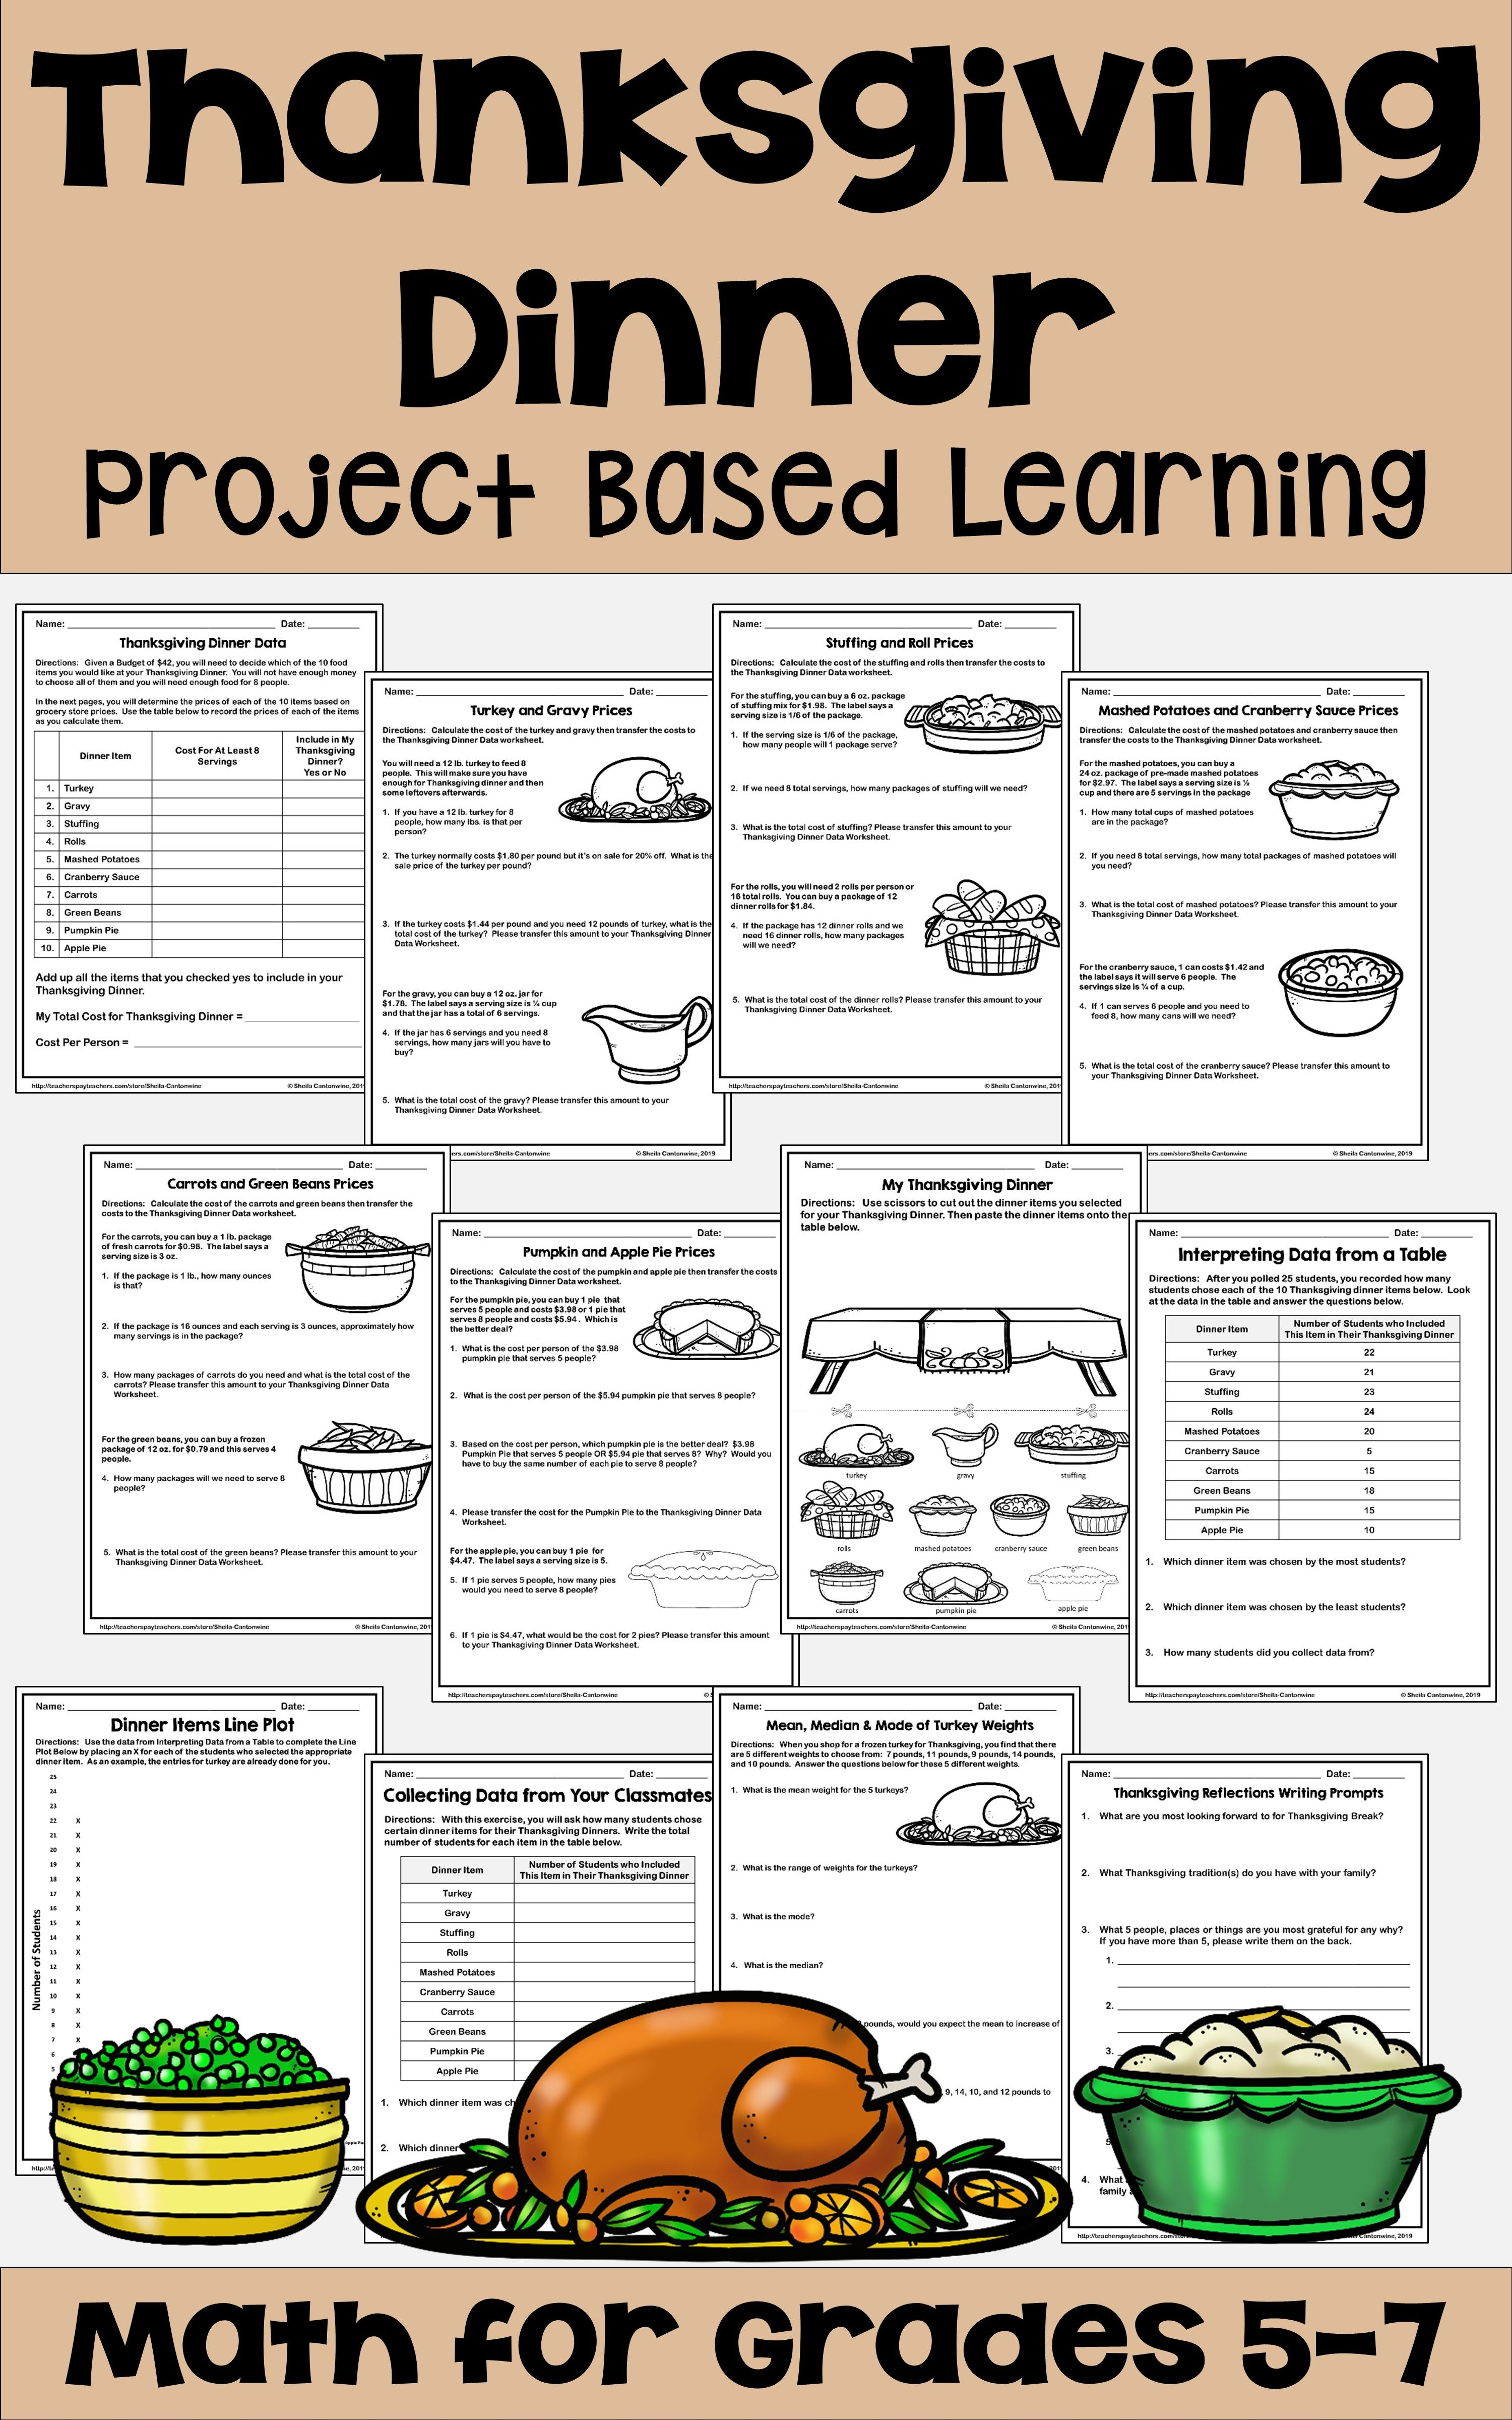 Thanksgiving Math For Grades 5 7 Project Based Learning Thanksgiving Math Activities Project Based Learning Thanksgiving Math [ 4800 x 3000 Pixel ]